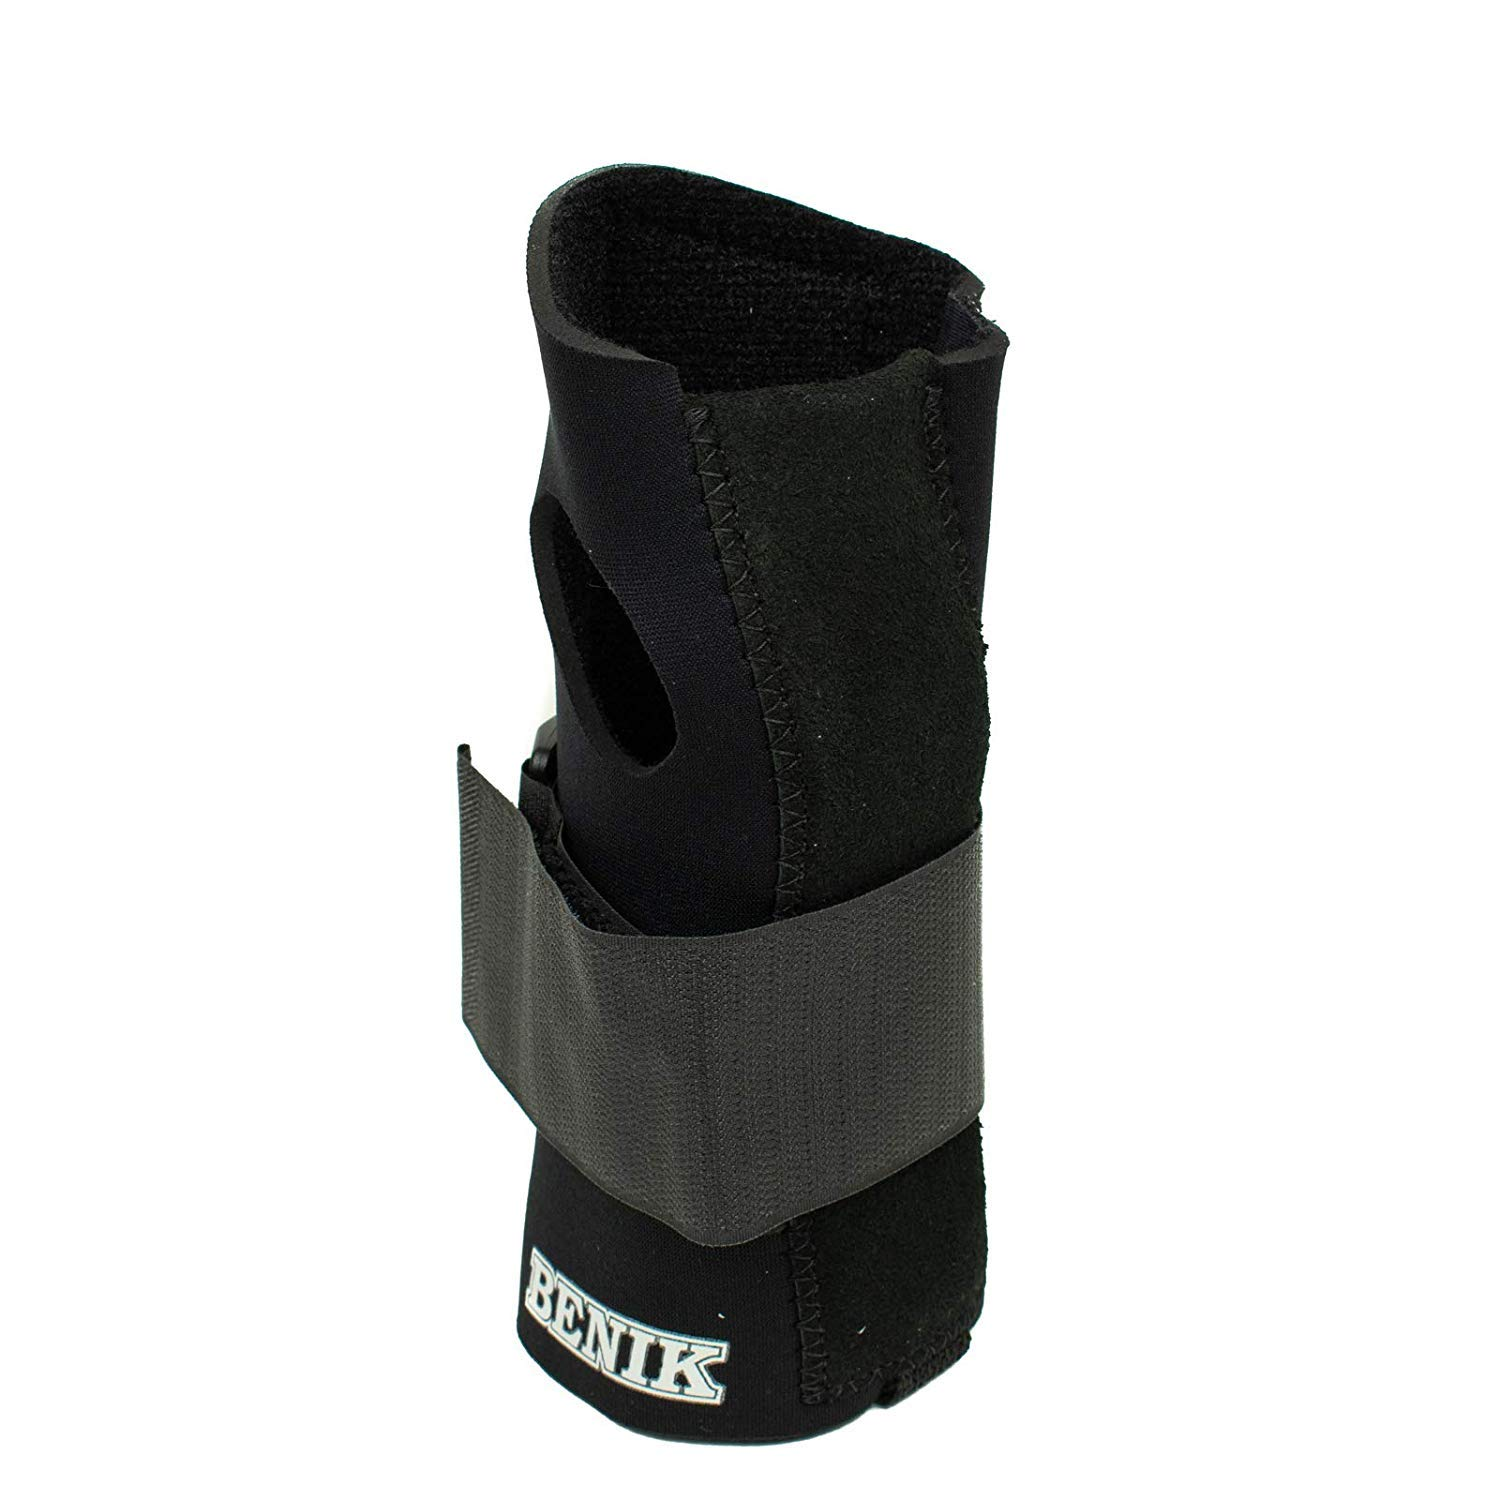 Benik Wrist Support with Straps Large and Stays Right Max 54% OFF Omaha Mall